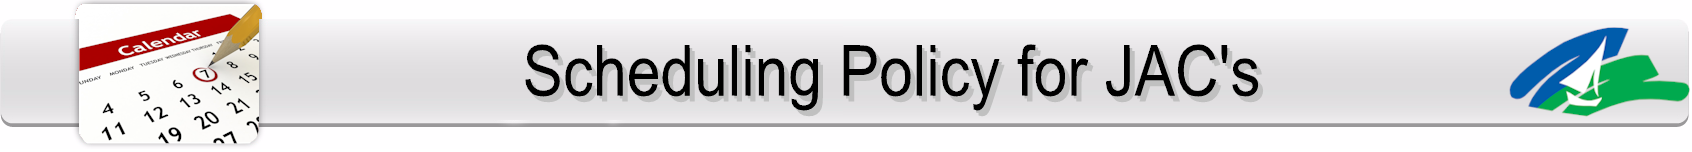 Scheduling Policy Page Banner